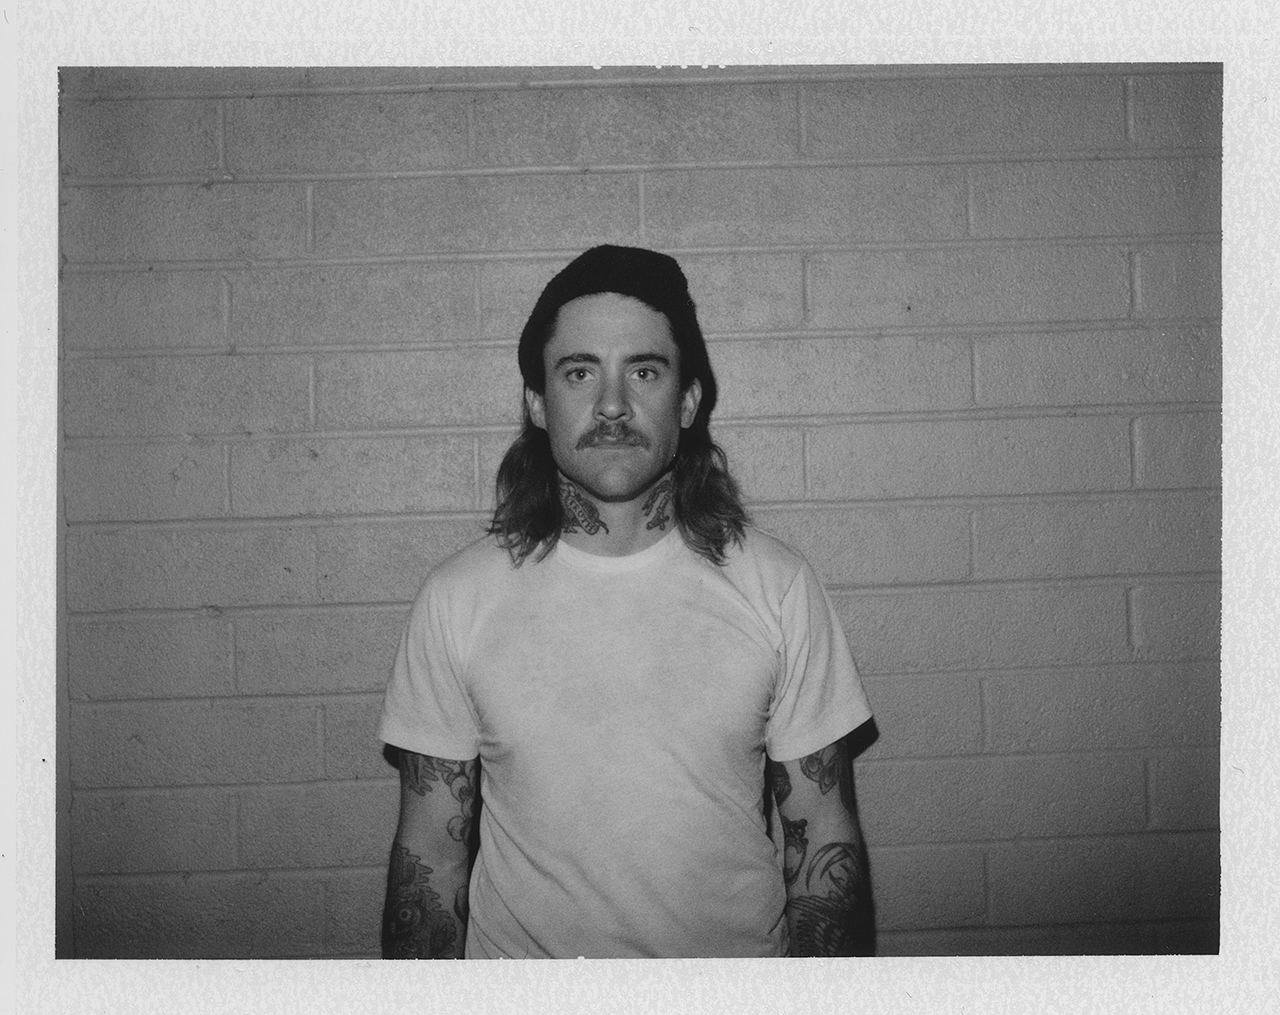 Jesse's Visual Interviews: Joseph Maddon